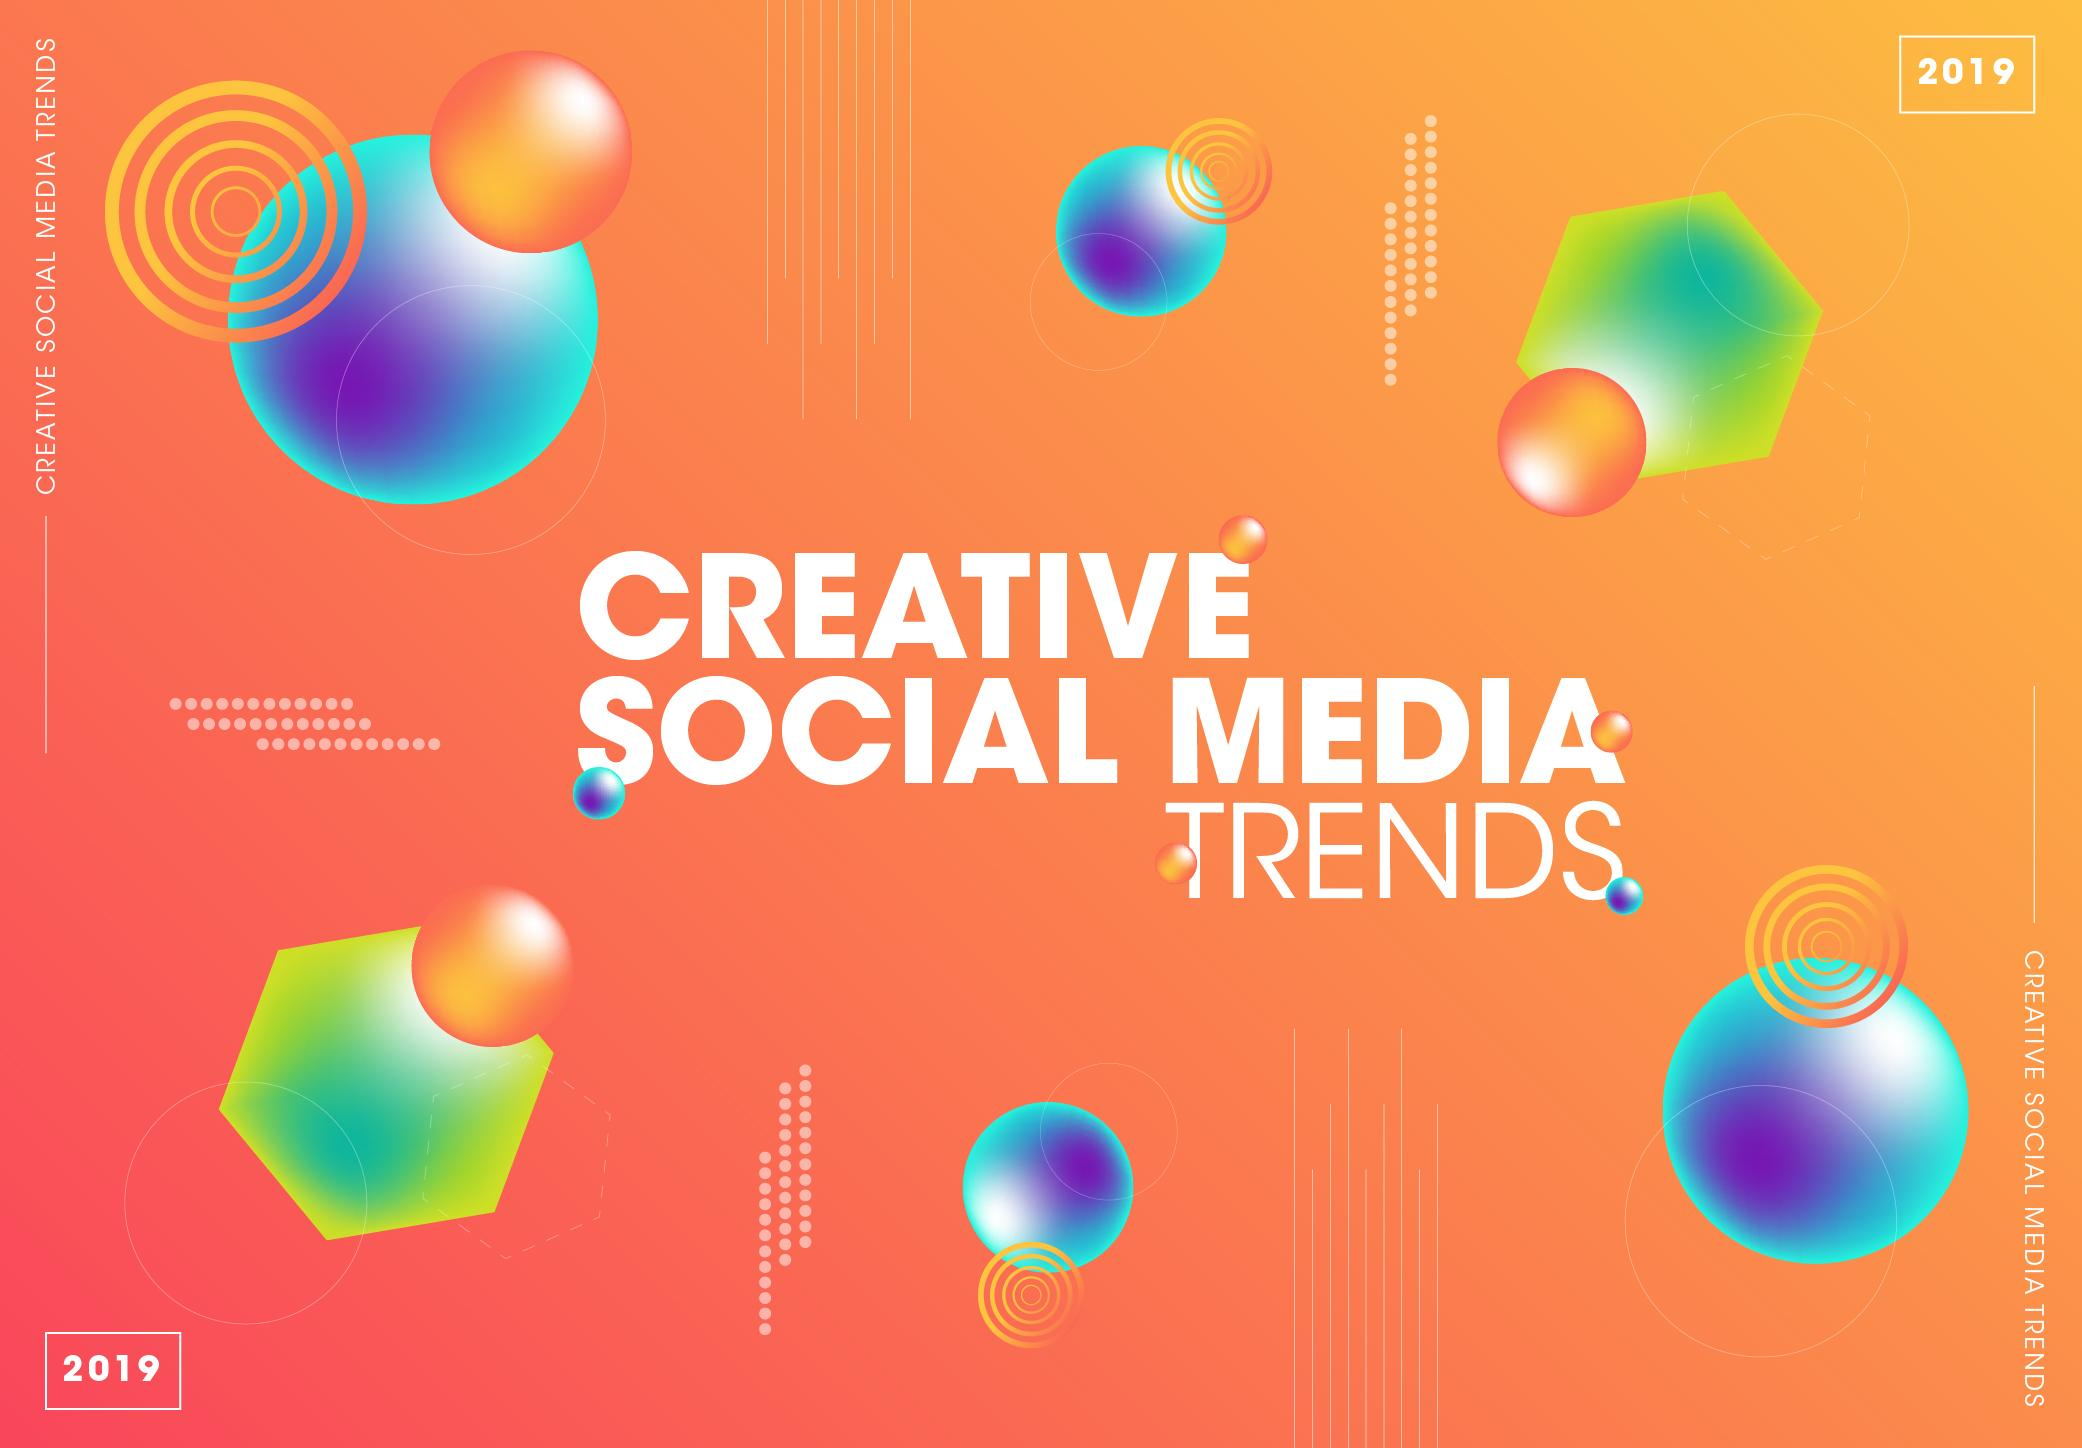 CREATIVE SOCIAL MEDIA TRENDS - News